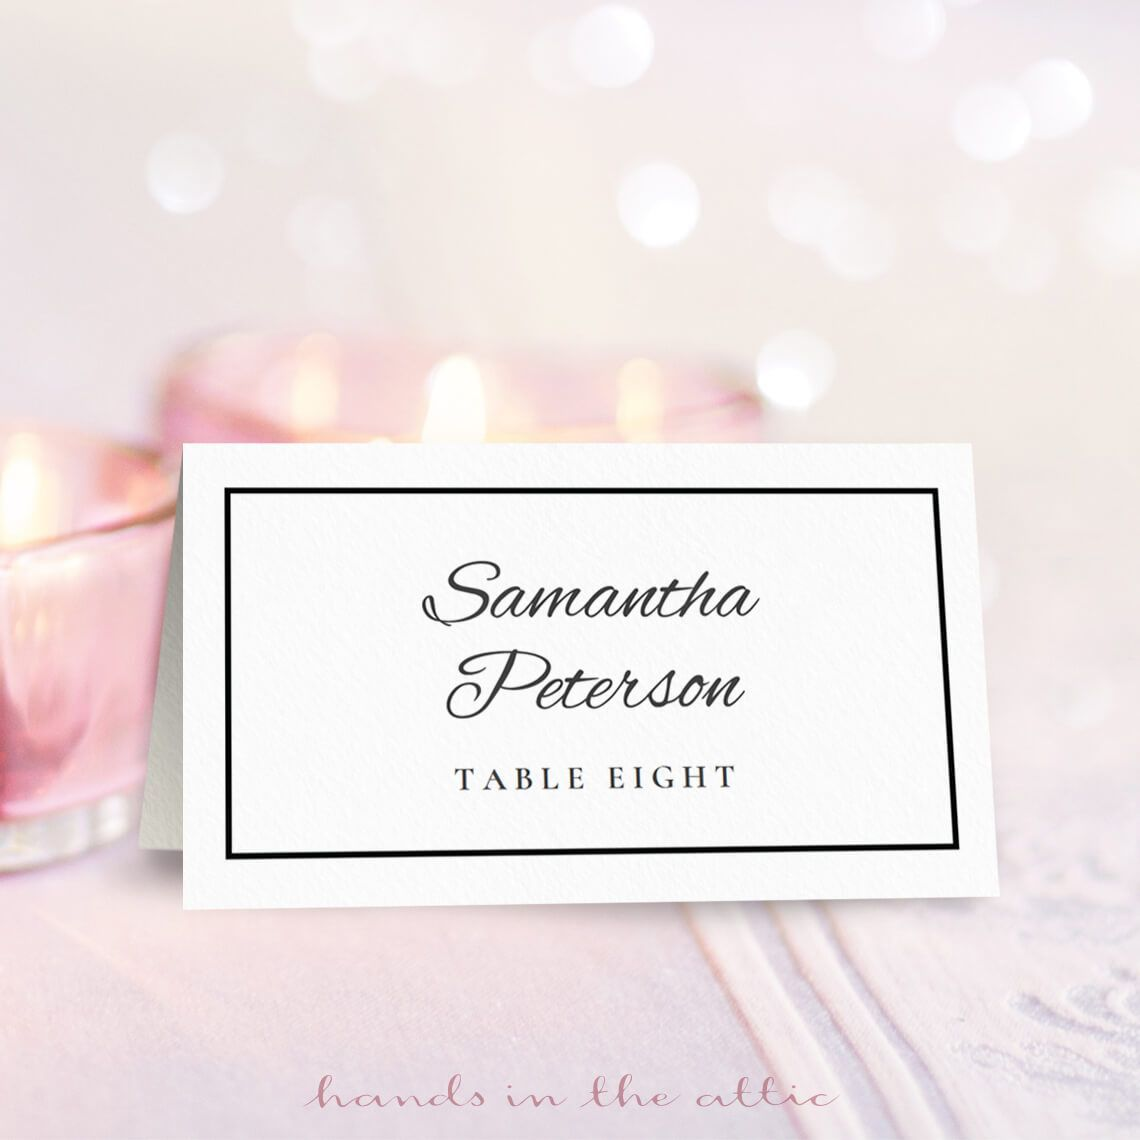 Wedding Place Card Template Free On Handsintheattic Inside Table Place Card Template Fr Free Place Card Template Place Card Template Card Templates Printable